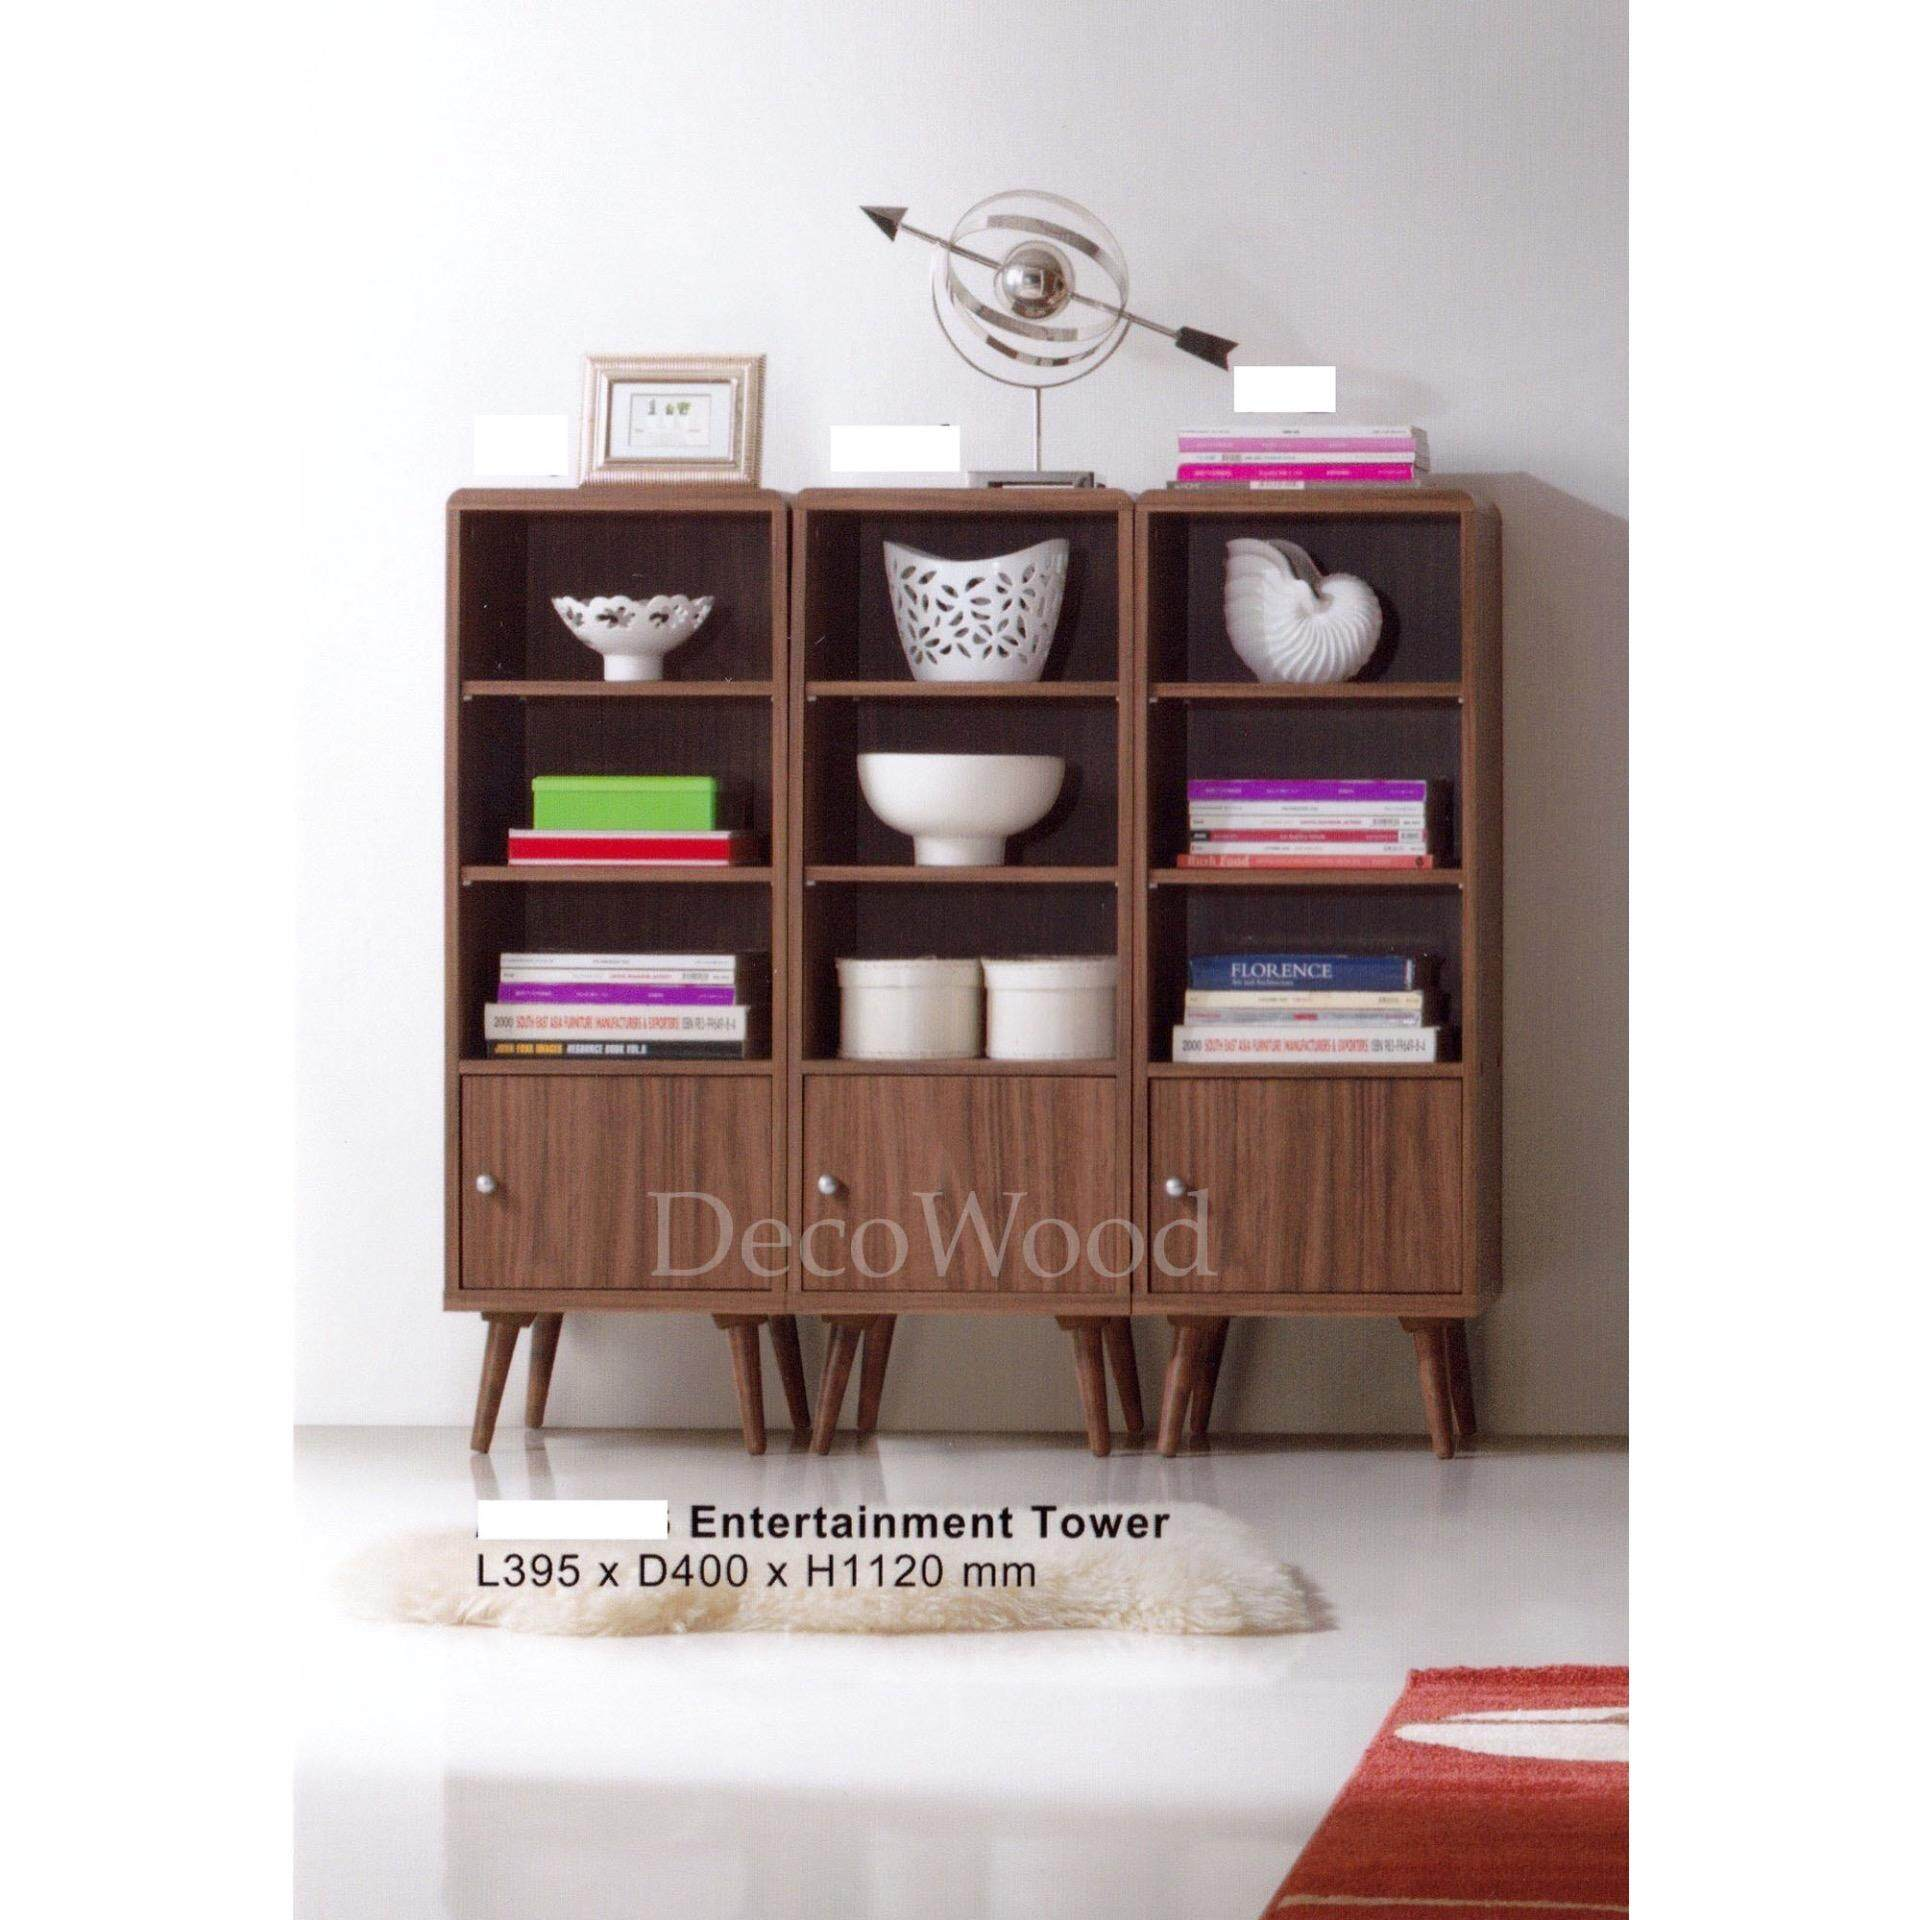 Ready-Fixed Book Shelf Multi-Purpose Display Cabinet Storage Cabinet Console Cabinet Entertainment TV Tower(Brown Color) L395MM X W400MM X H1120MM